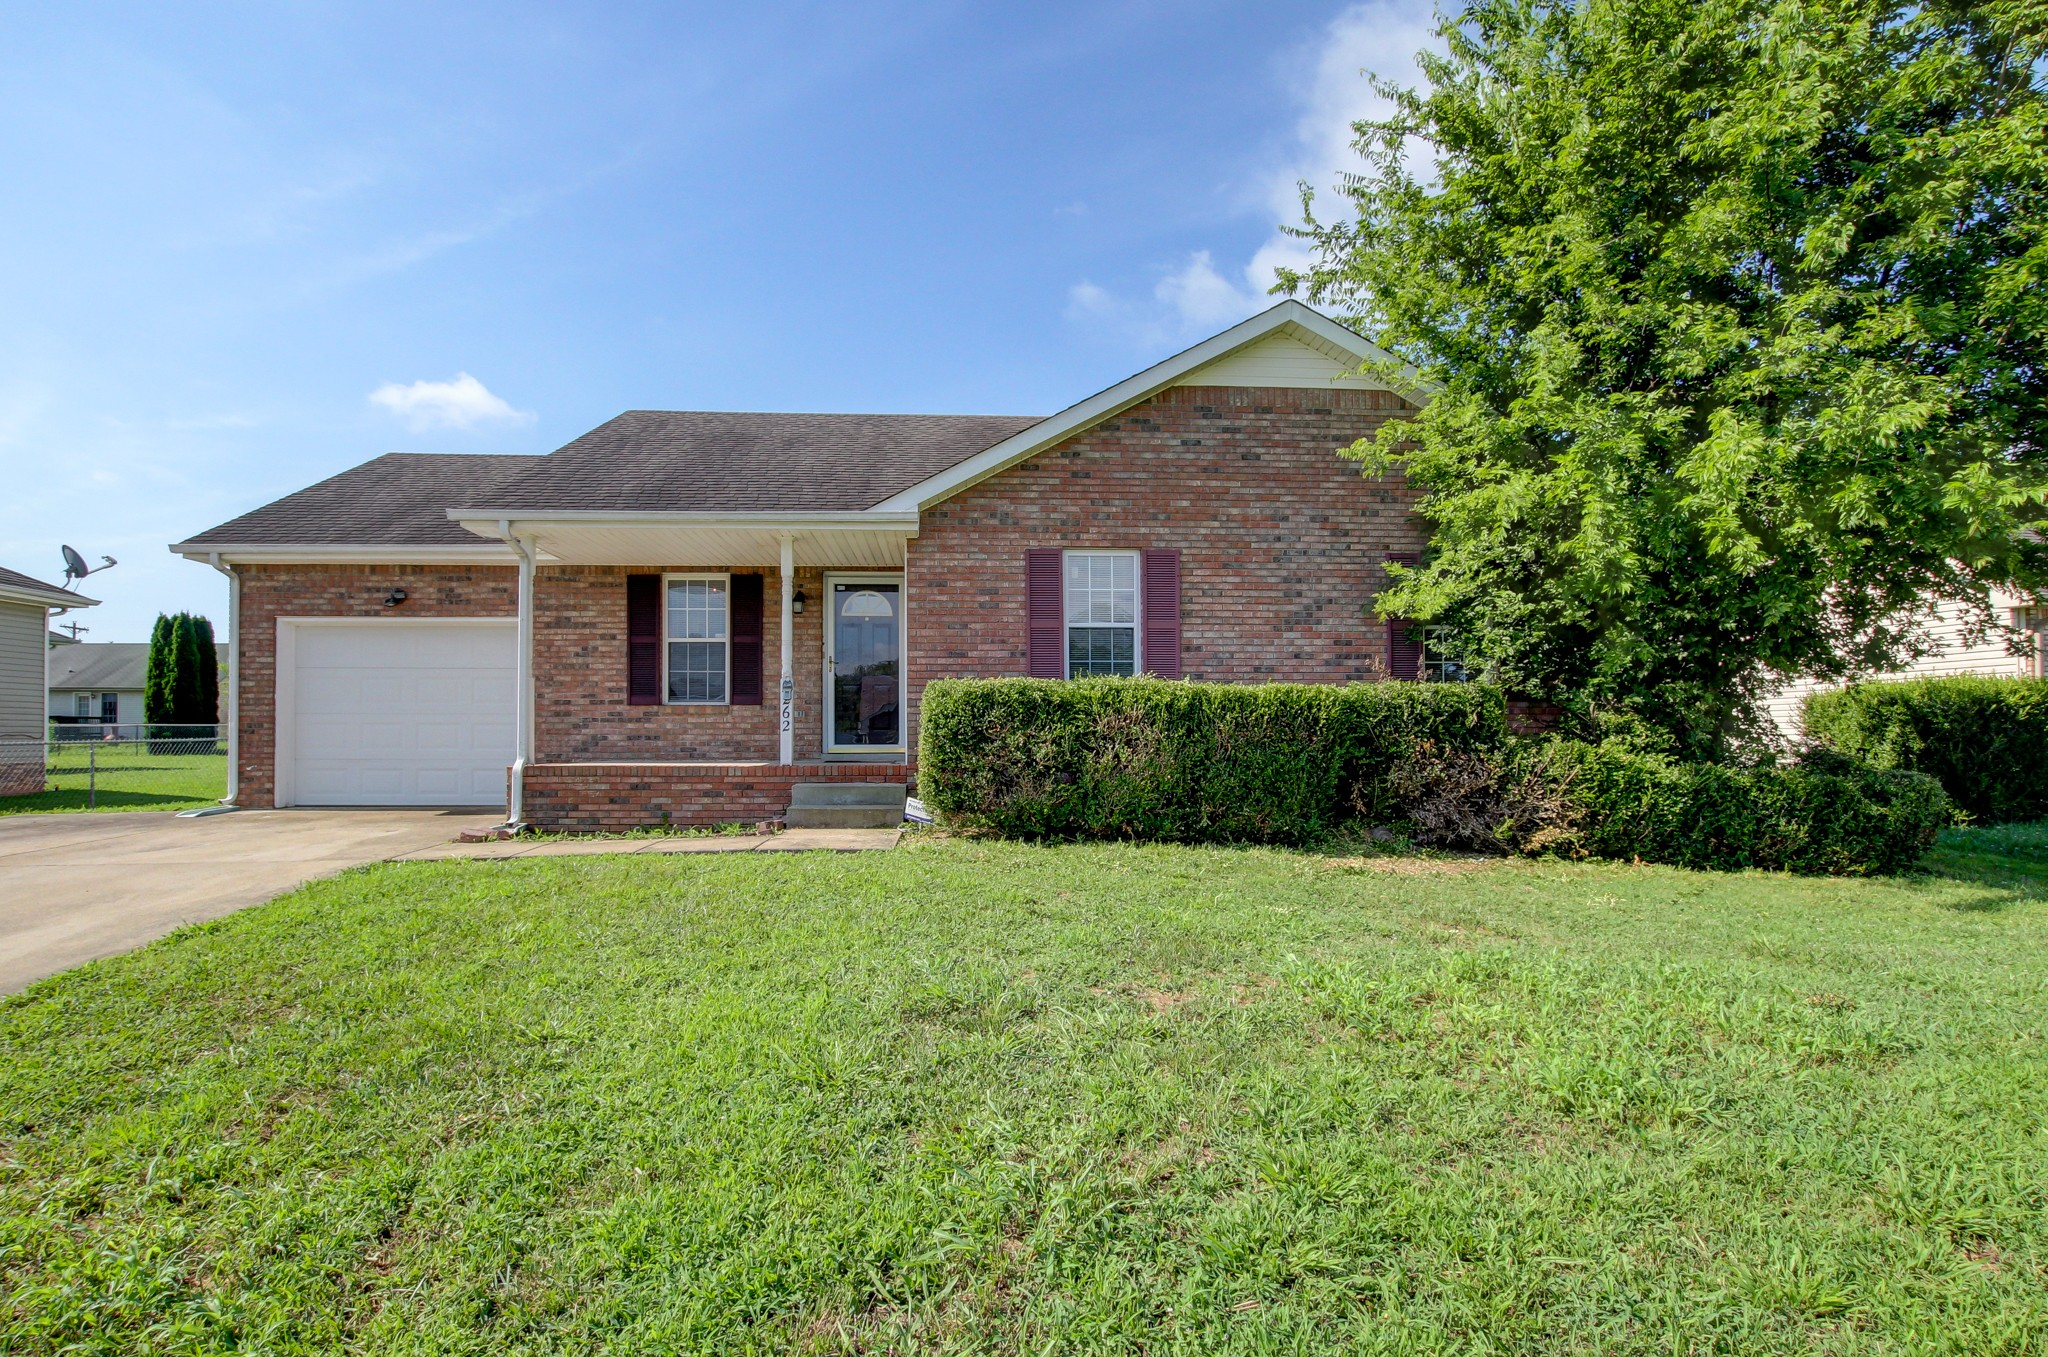 3262 Tabby Dr Property Photo - Clarksville, TN real estate listing